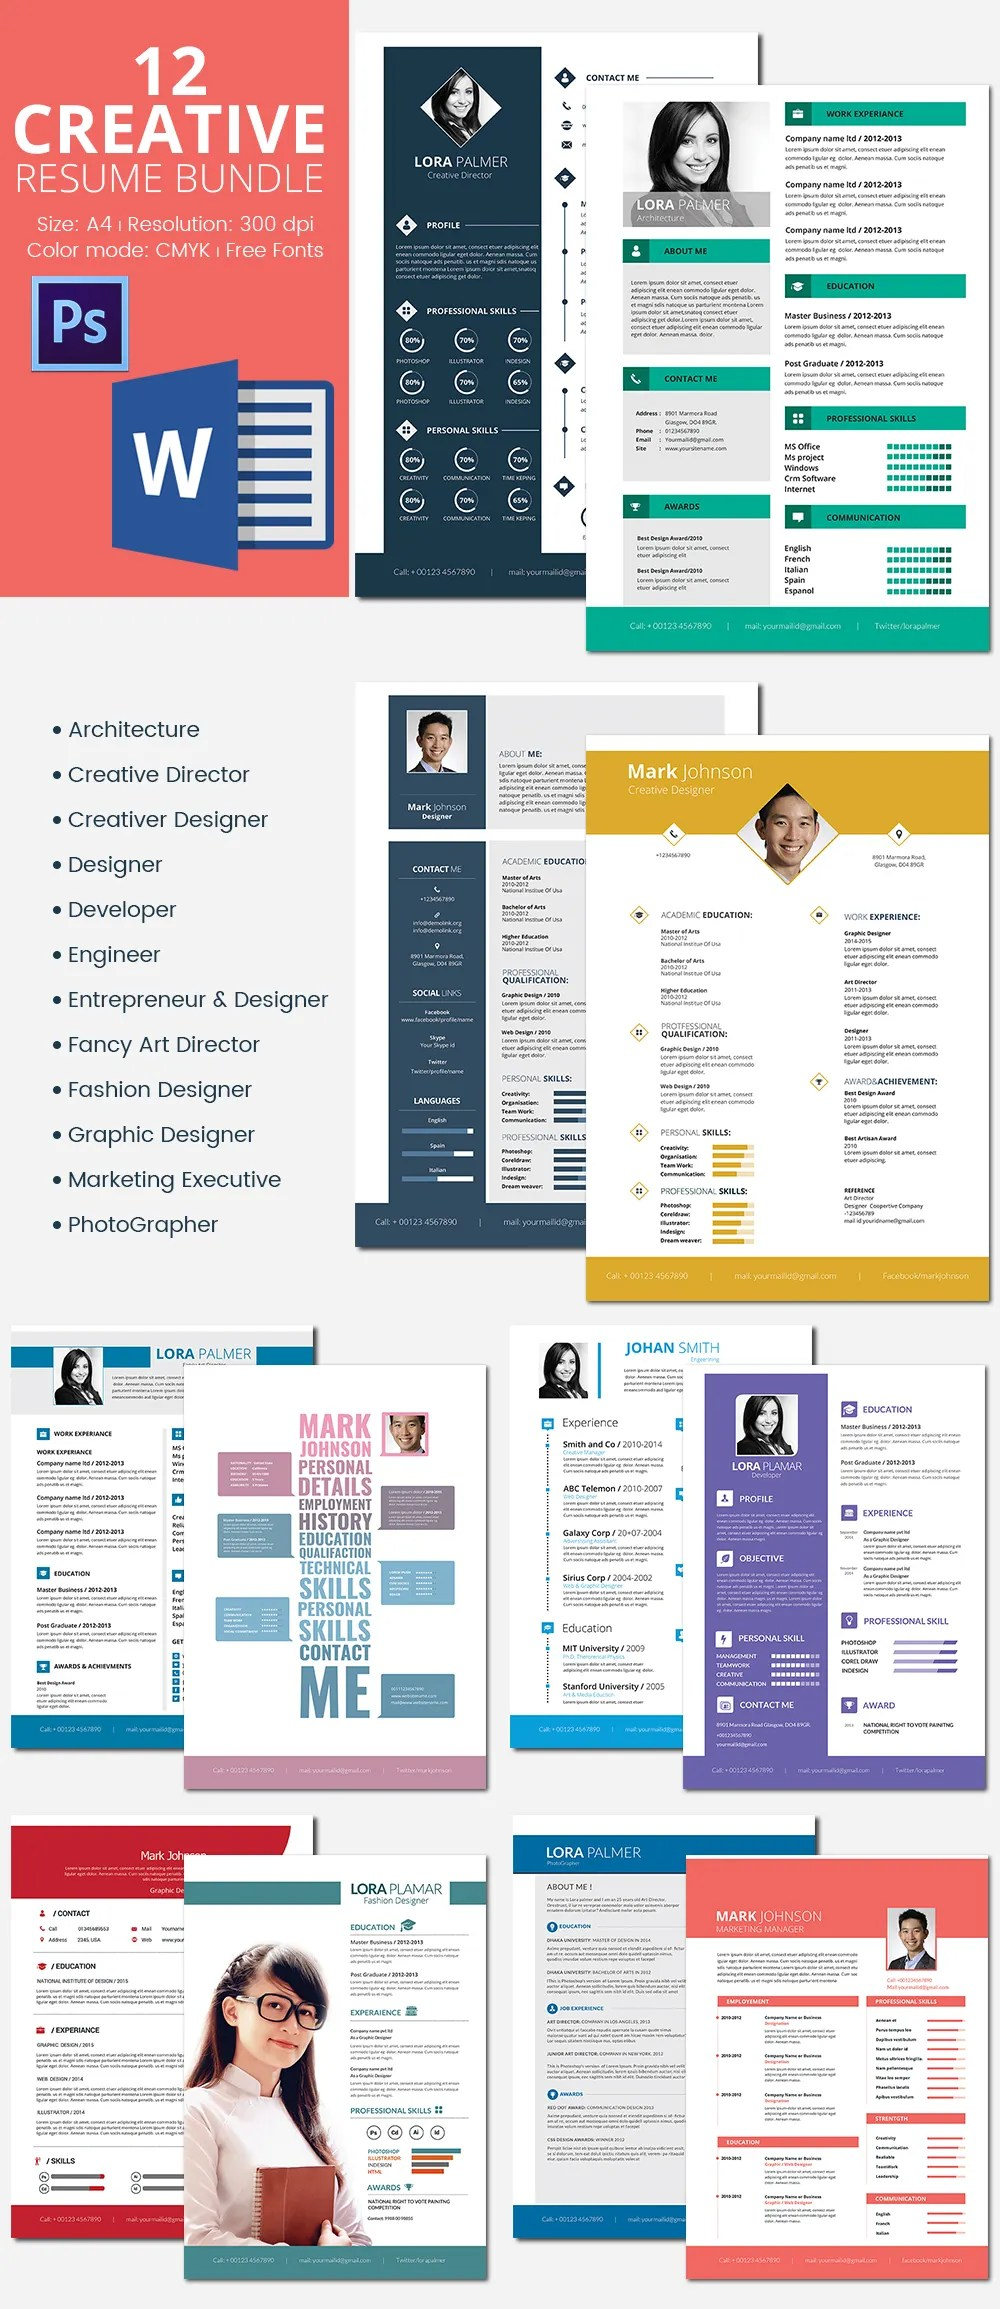 Web Design Resume Template Free Download 51 Creative Resume Templates Free Psd Eps Format Download